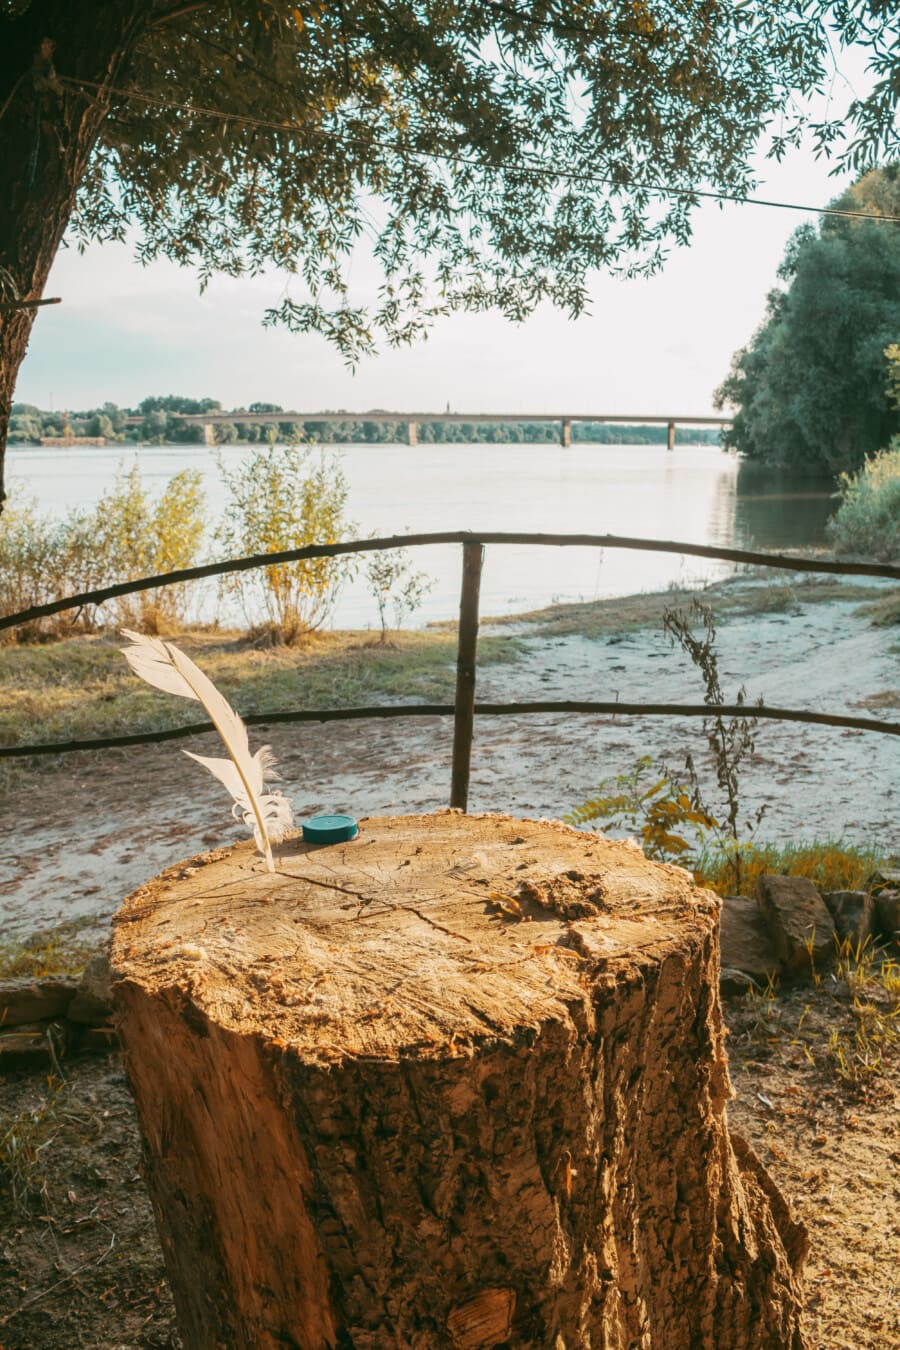 river, beach grass, trees, wood, detail, feather, tree, water, nature, outdoors